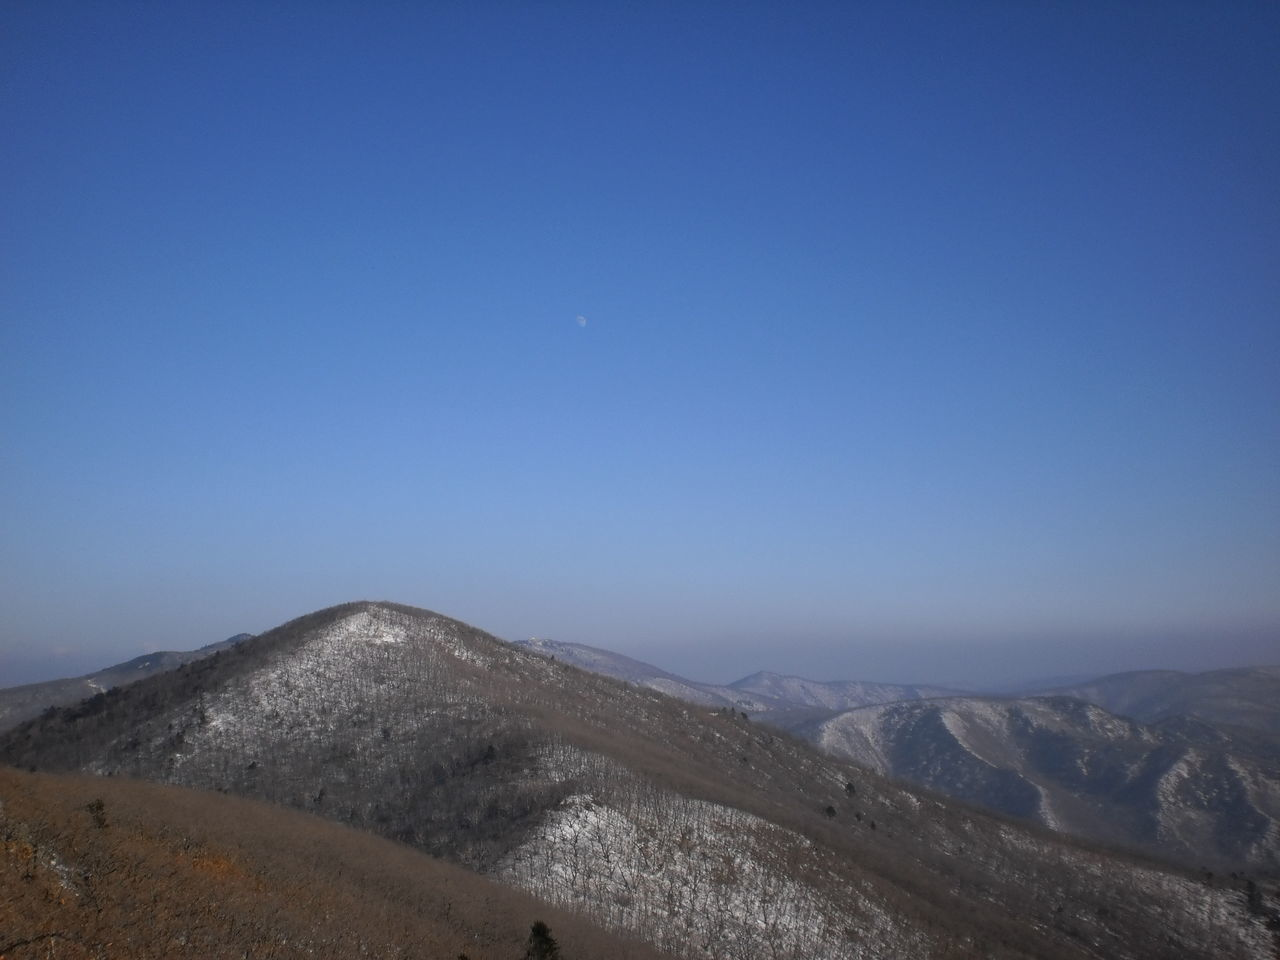 mountain, nature, blue, clear sky, landscape, scenics, copy space, tranquil scene, tranquility, no people, outdoors, beauty in nature, mountain range, day, moon, sky